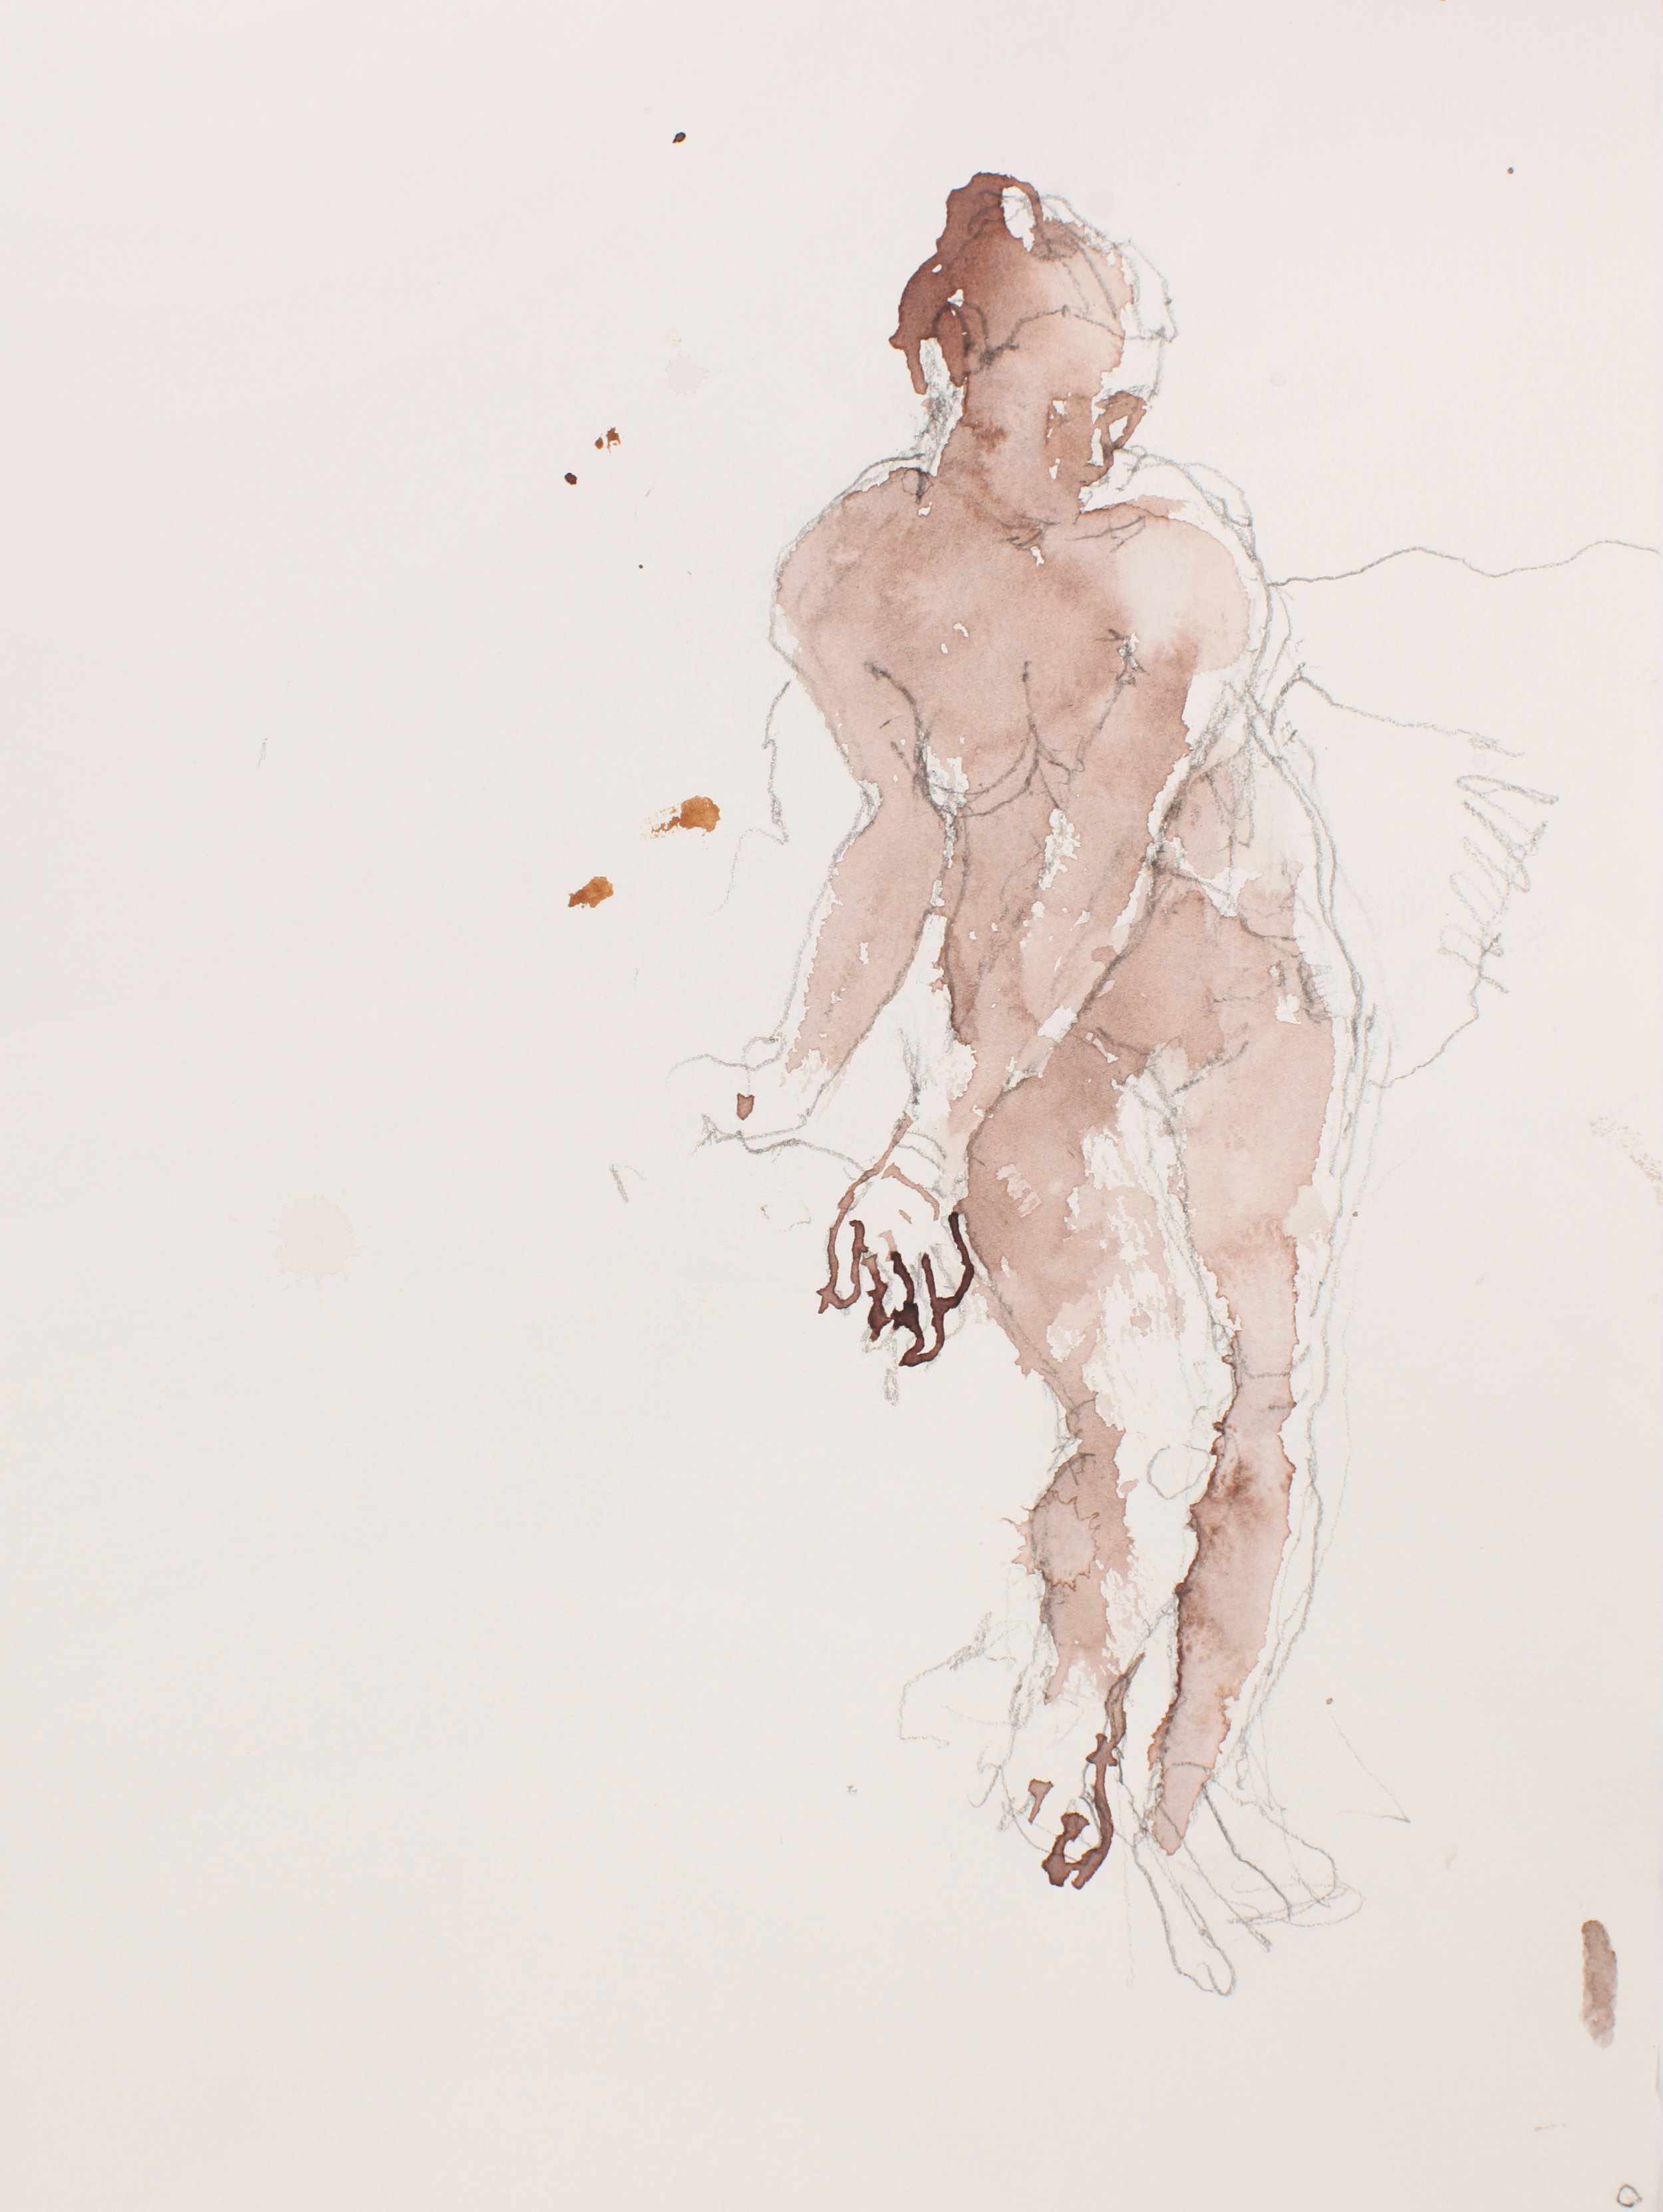 2007_Standing_Nude_with_Arms_Turned_to_Left_watercolour_and_pencil_on_paper_15x11in_WPF516.jpg